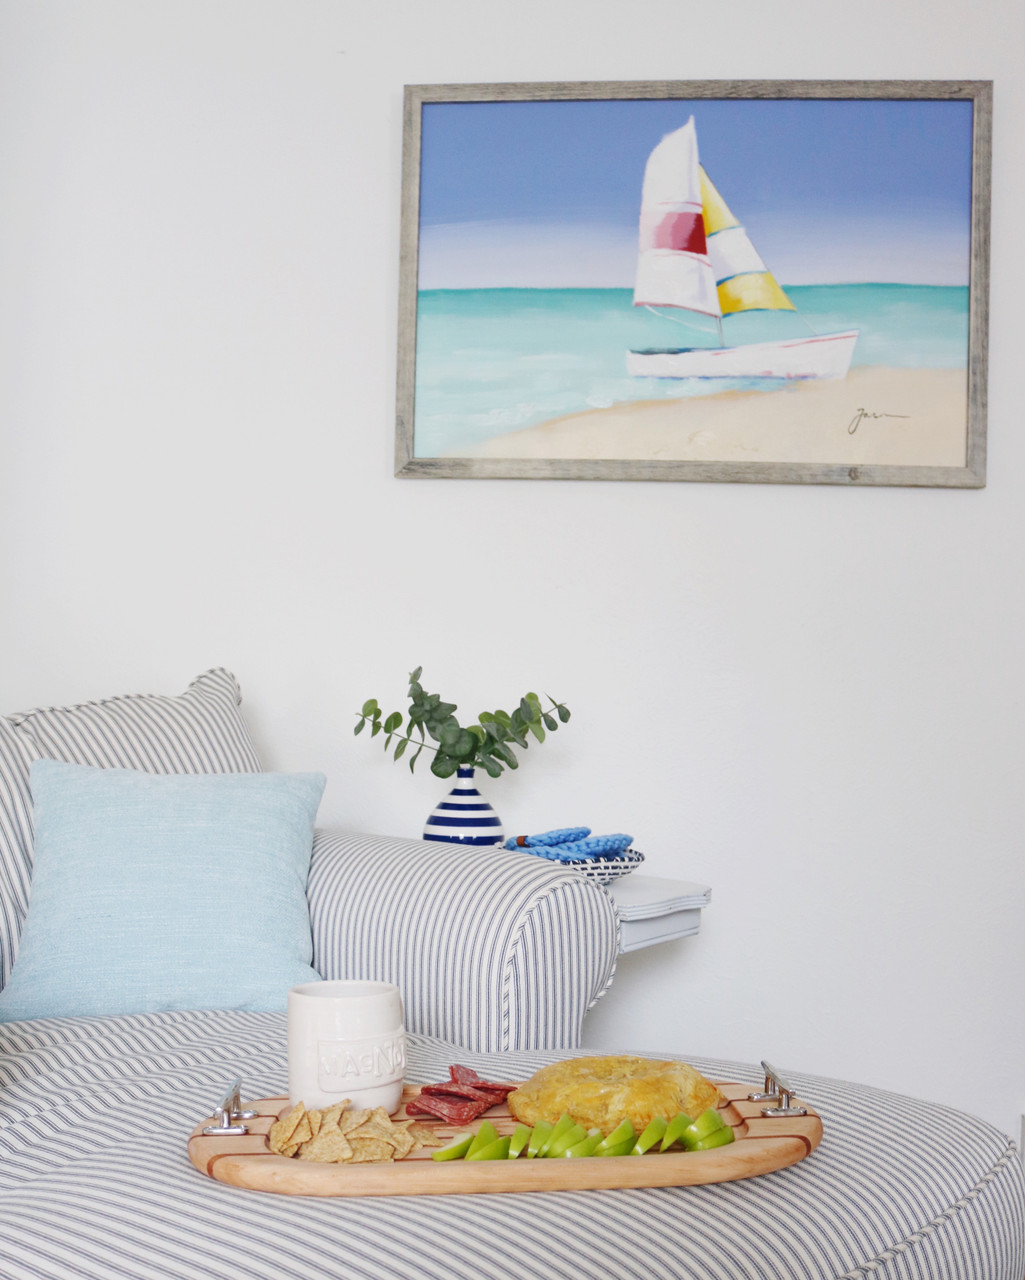 Guest Spotlight: Shannon Solt's Favorite Ways to Use Her Nautical Board